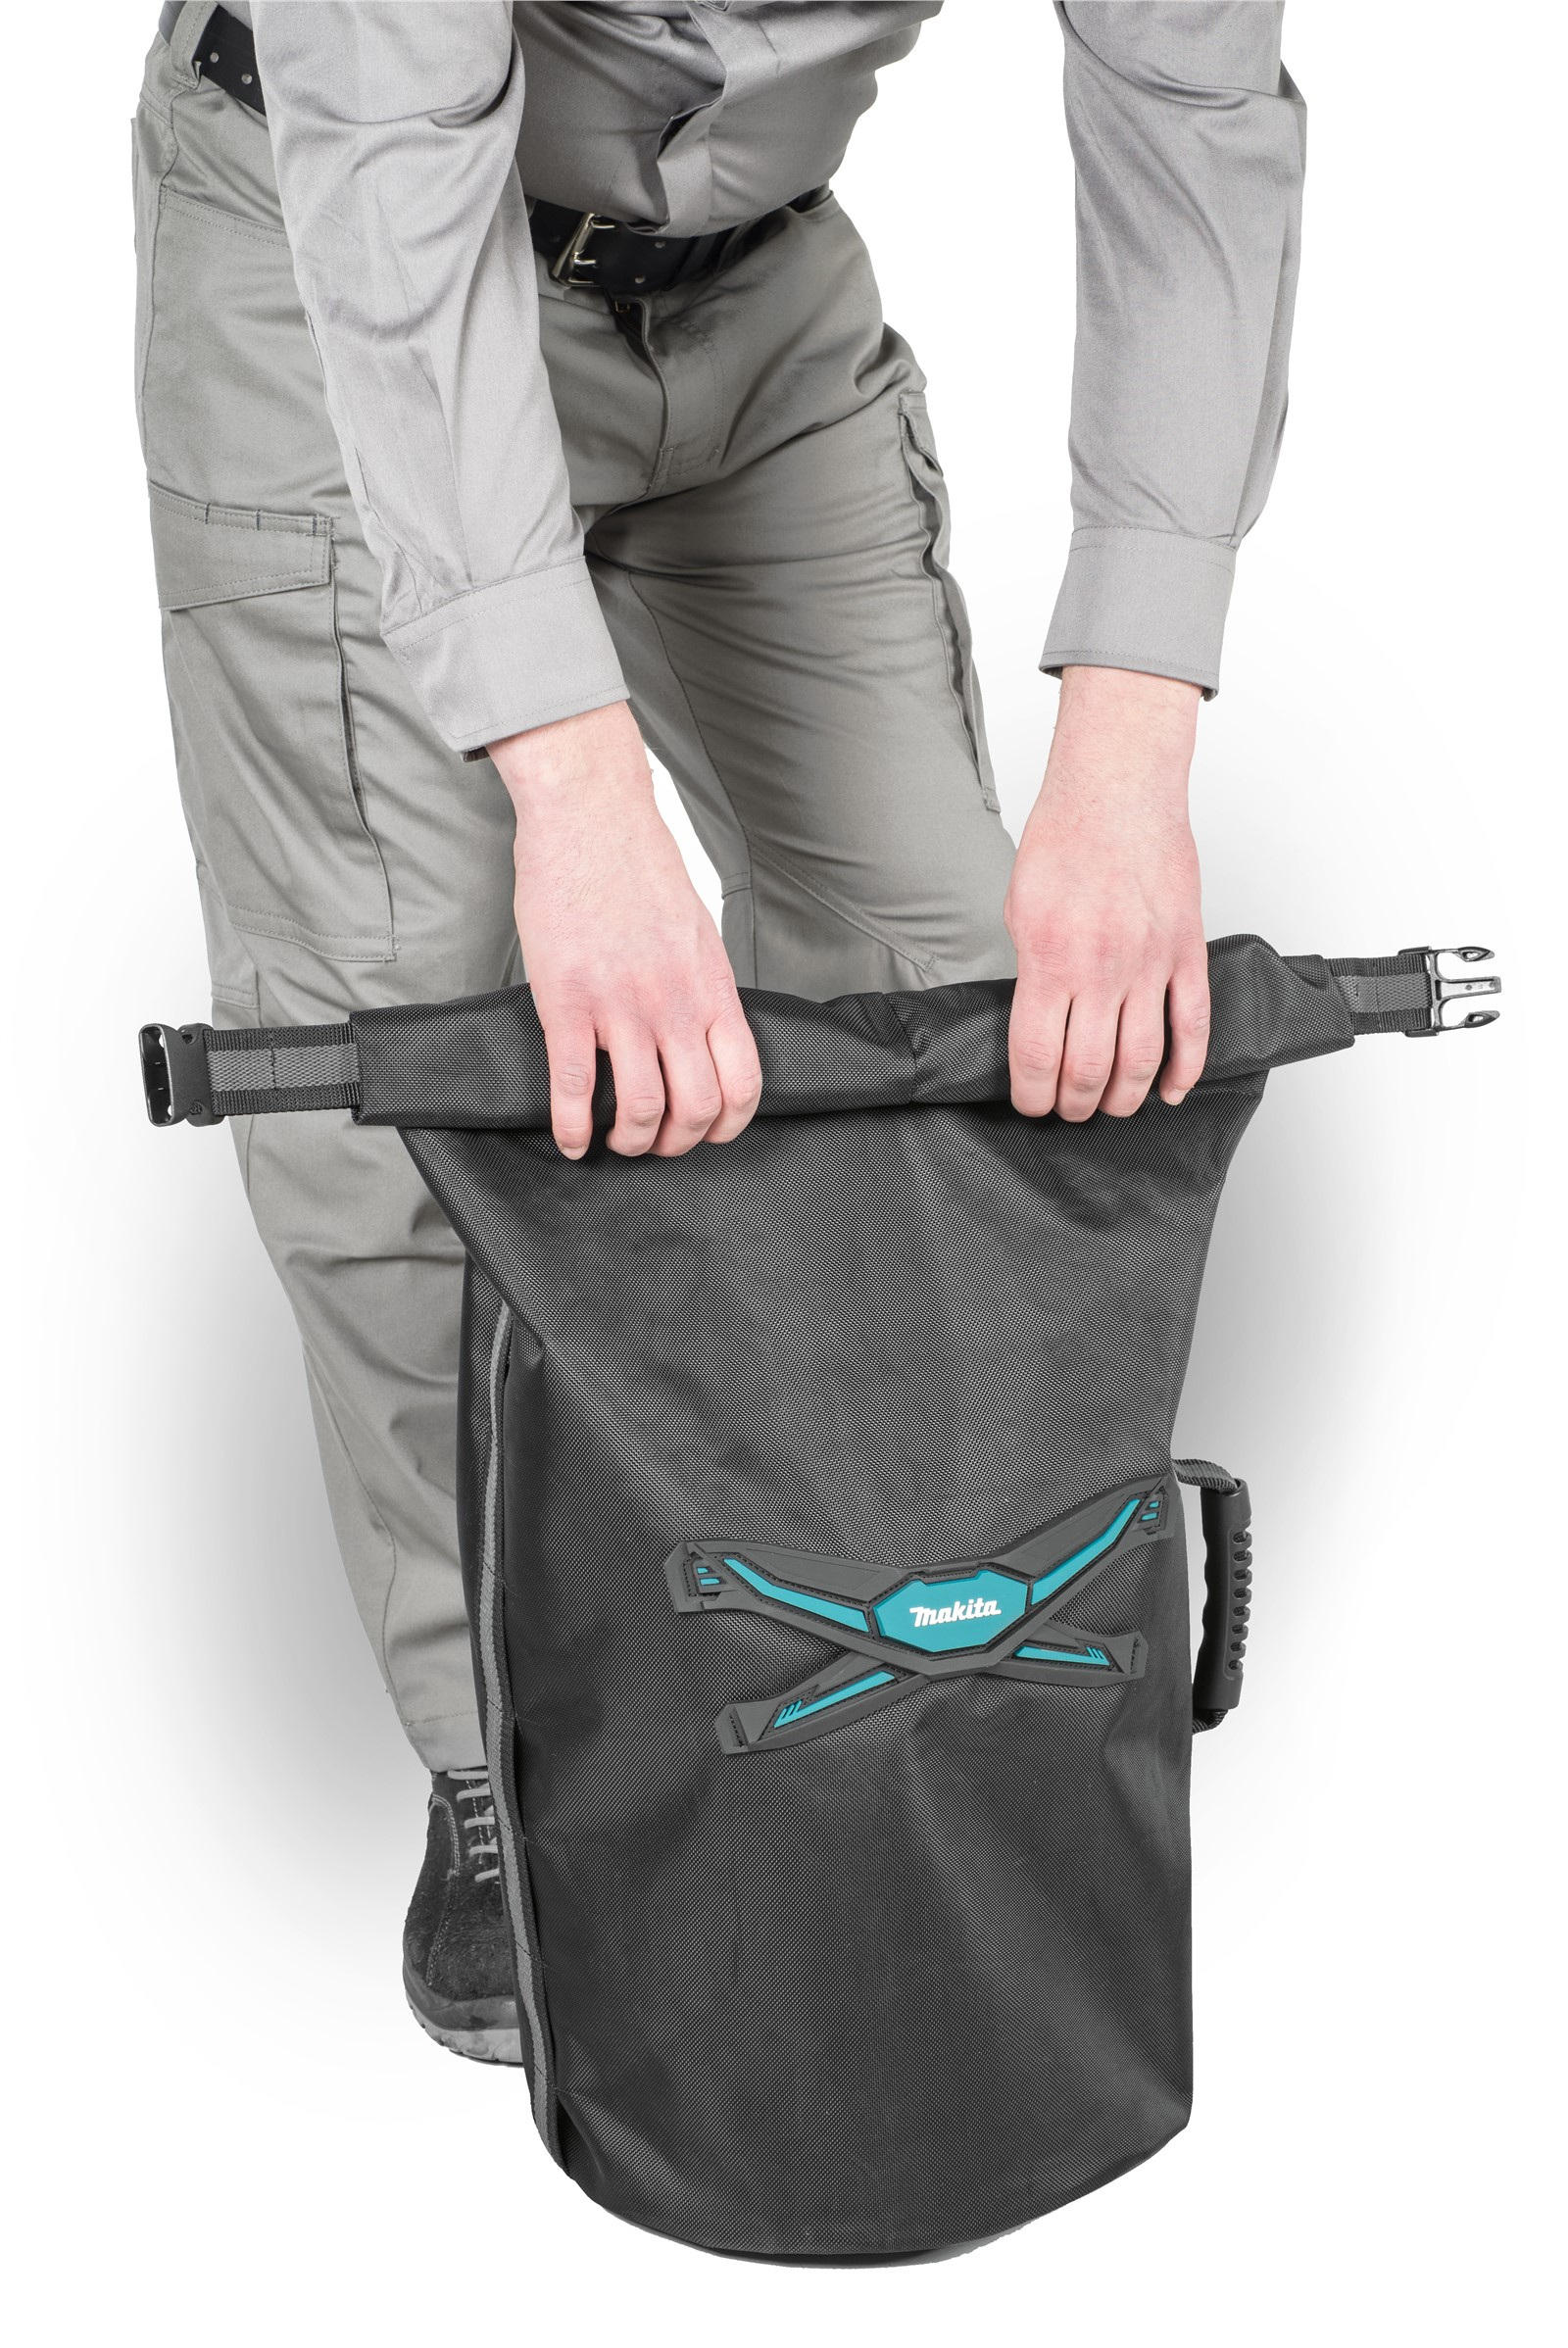 Makita E-05561 Roll Top All Weather Tube Tool Bag Holdall Strap Belt System